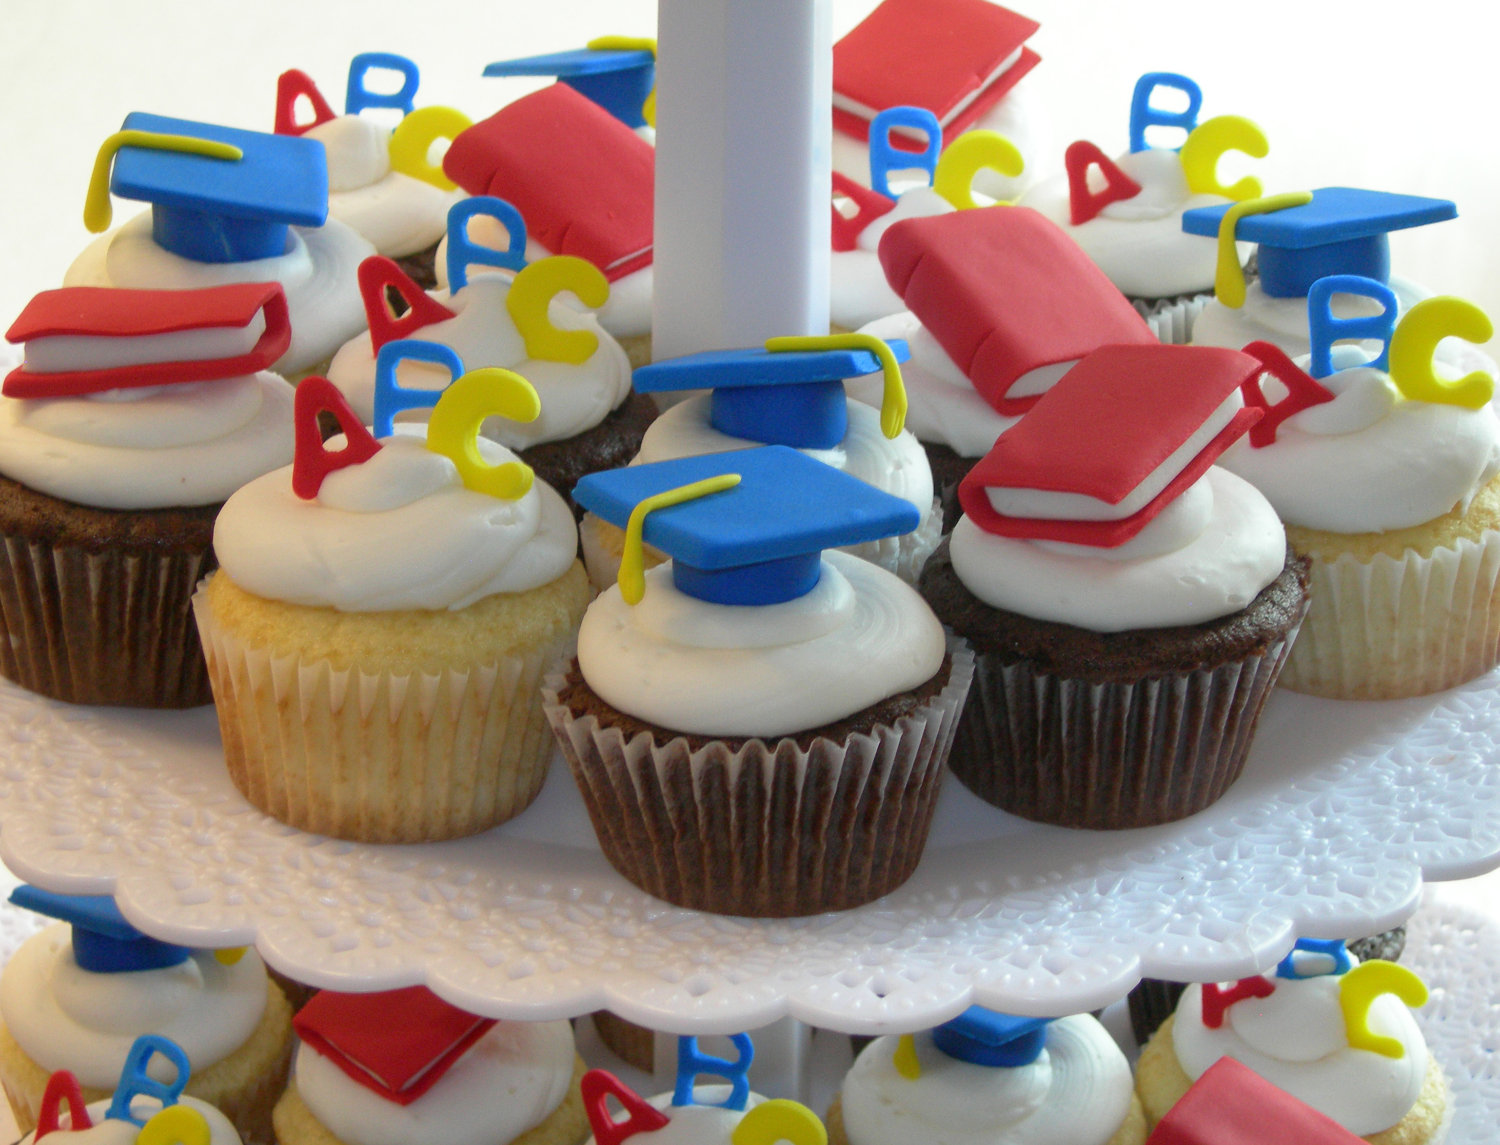 Colorful Kindergarten with ABC and Mini Storybook Topper Cupcakes